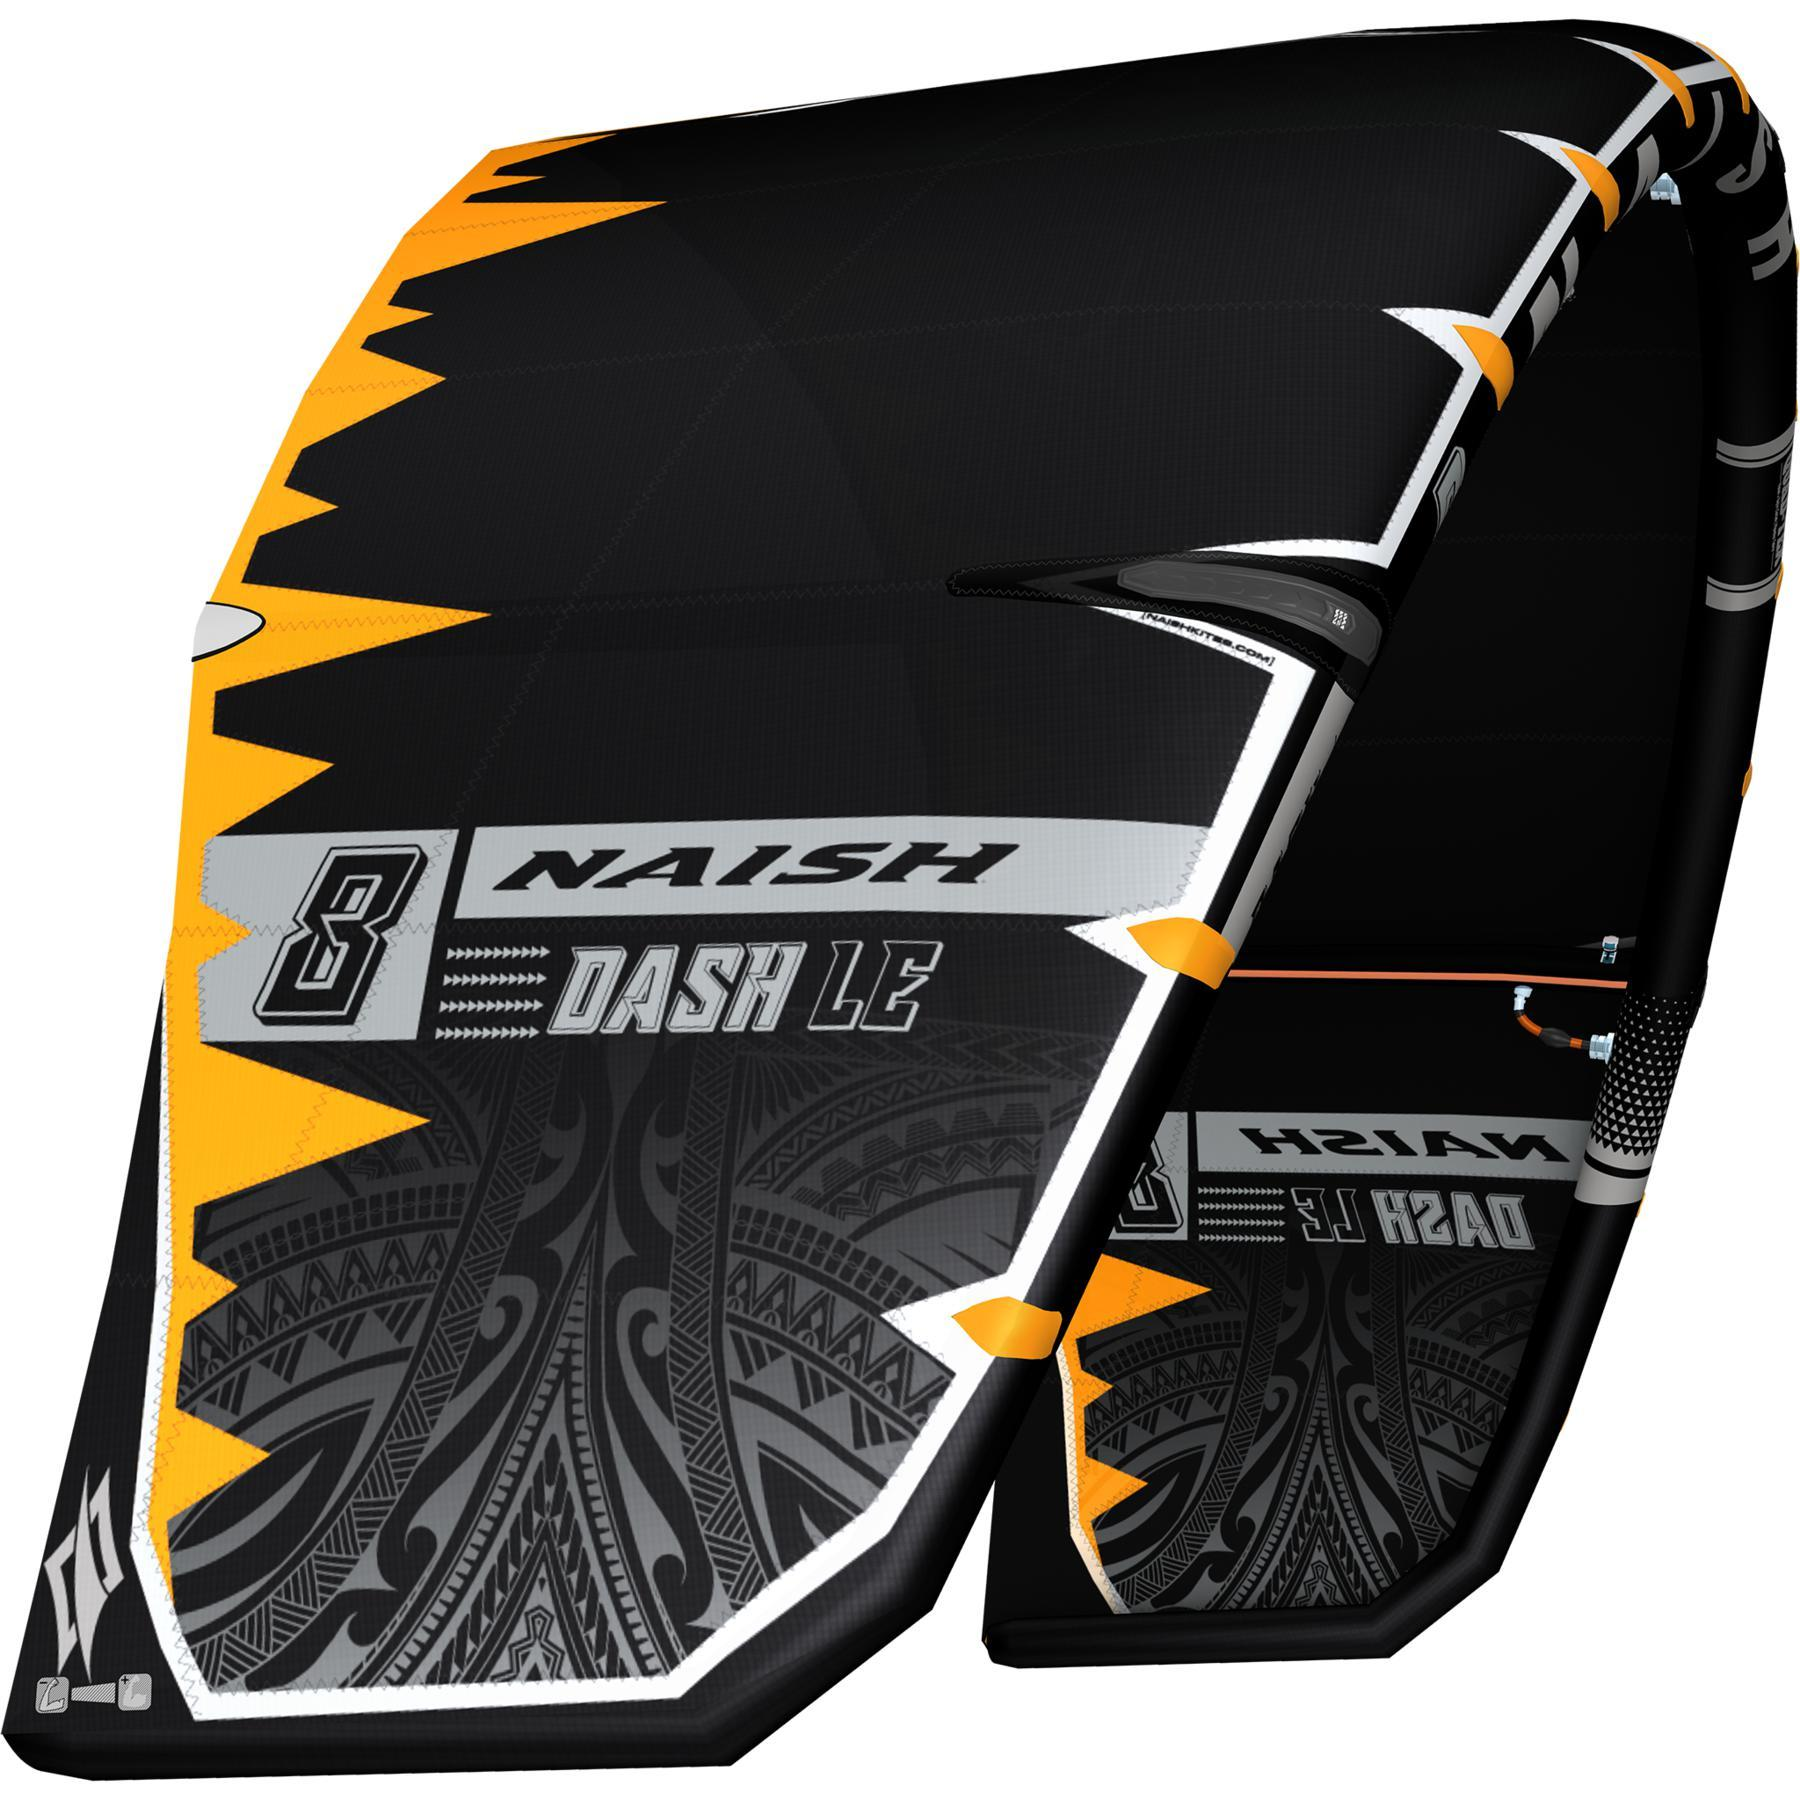 Naish S25 Dash | LE Kiteboarding Kite-Big Winds